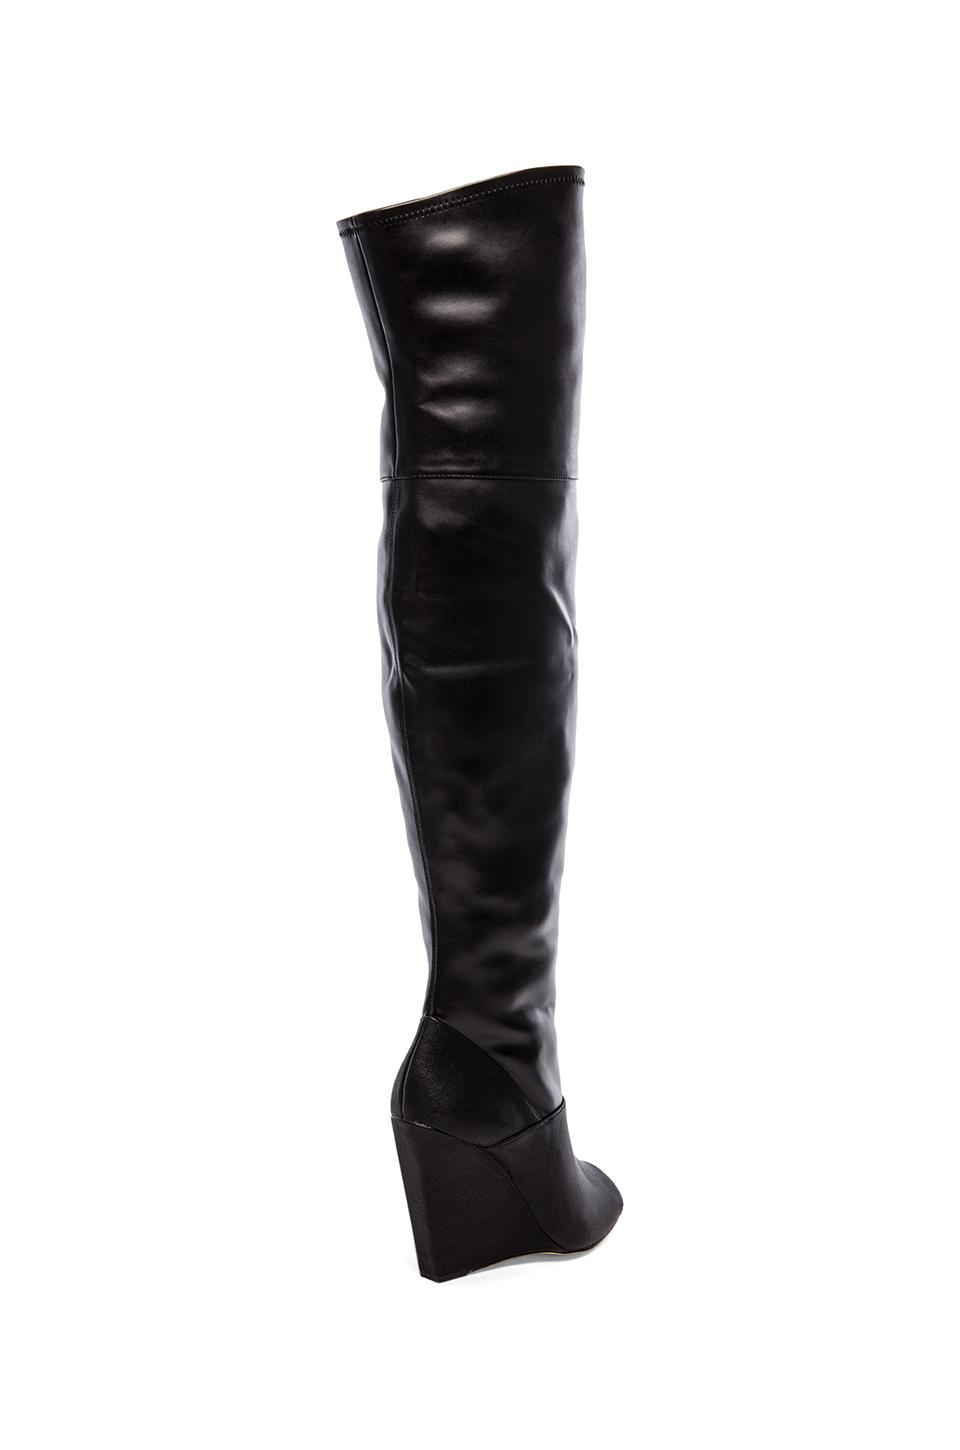 Bcbgmaxazria Gian Open Toe Over The Knee Boots in Black | Lyst